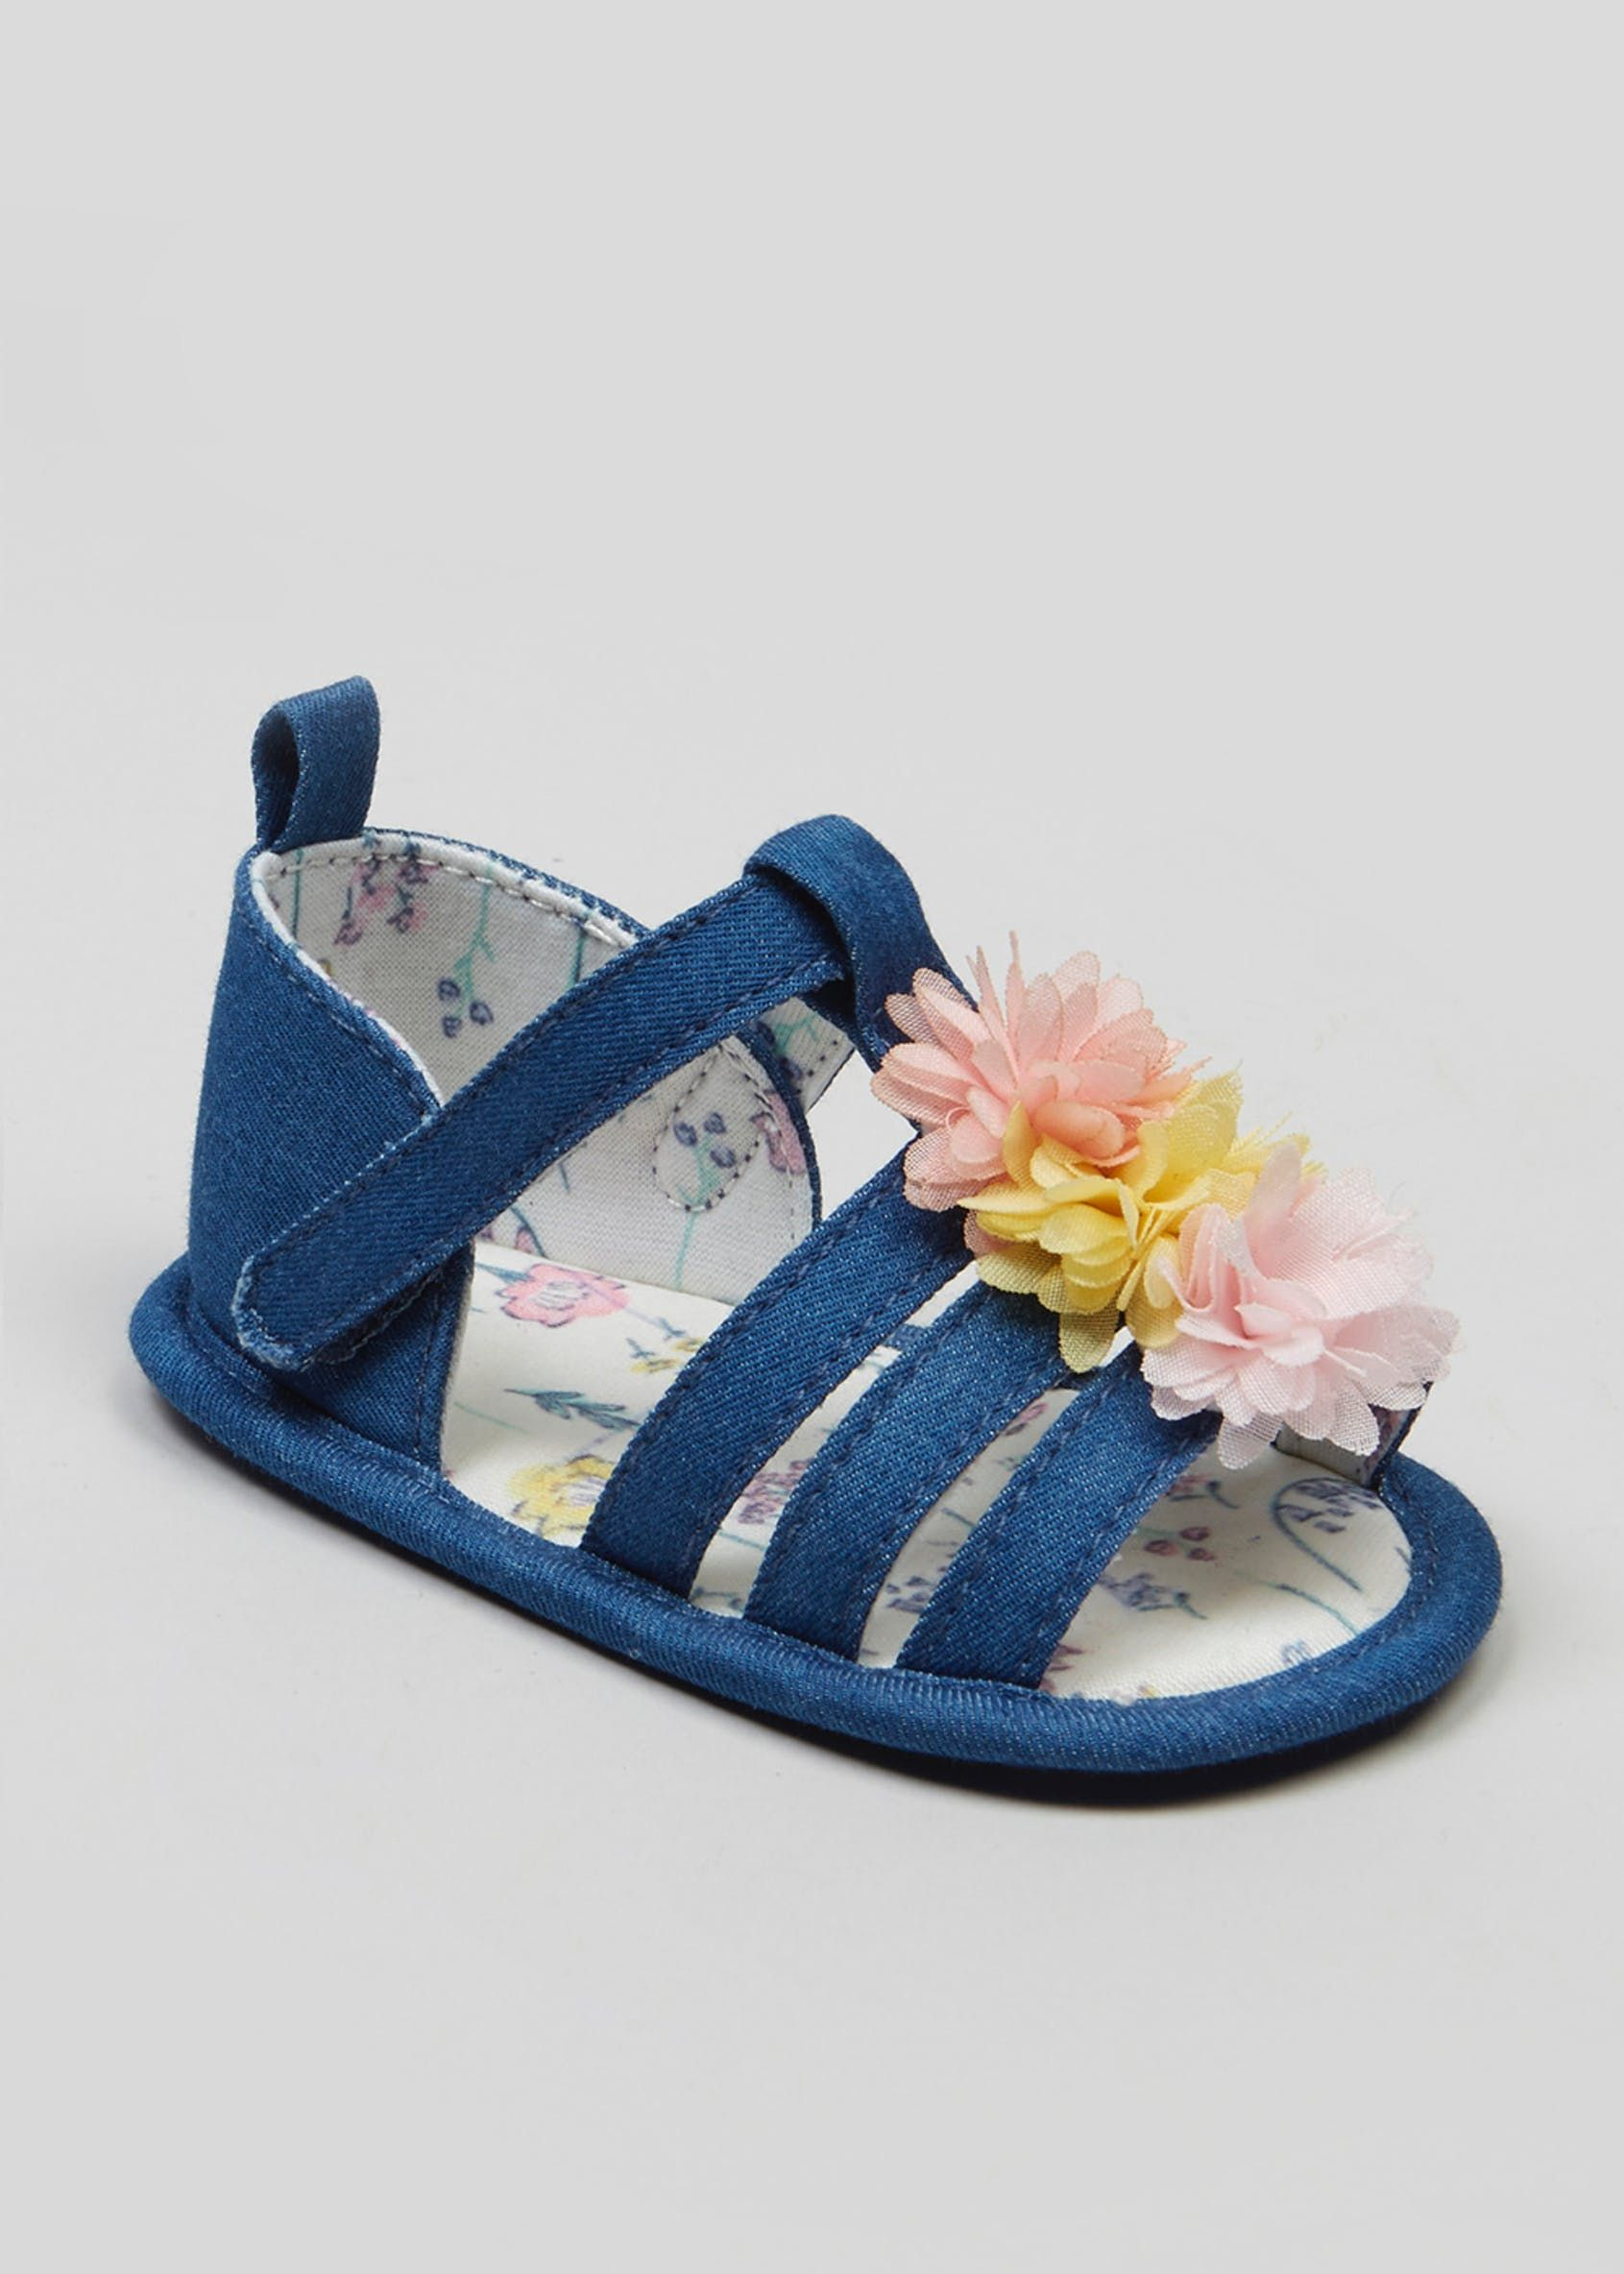 Baby sandals, Baby girl shoes, Baby shoes